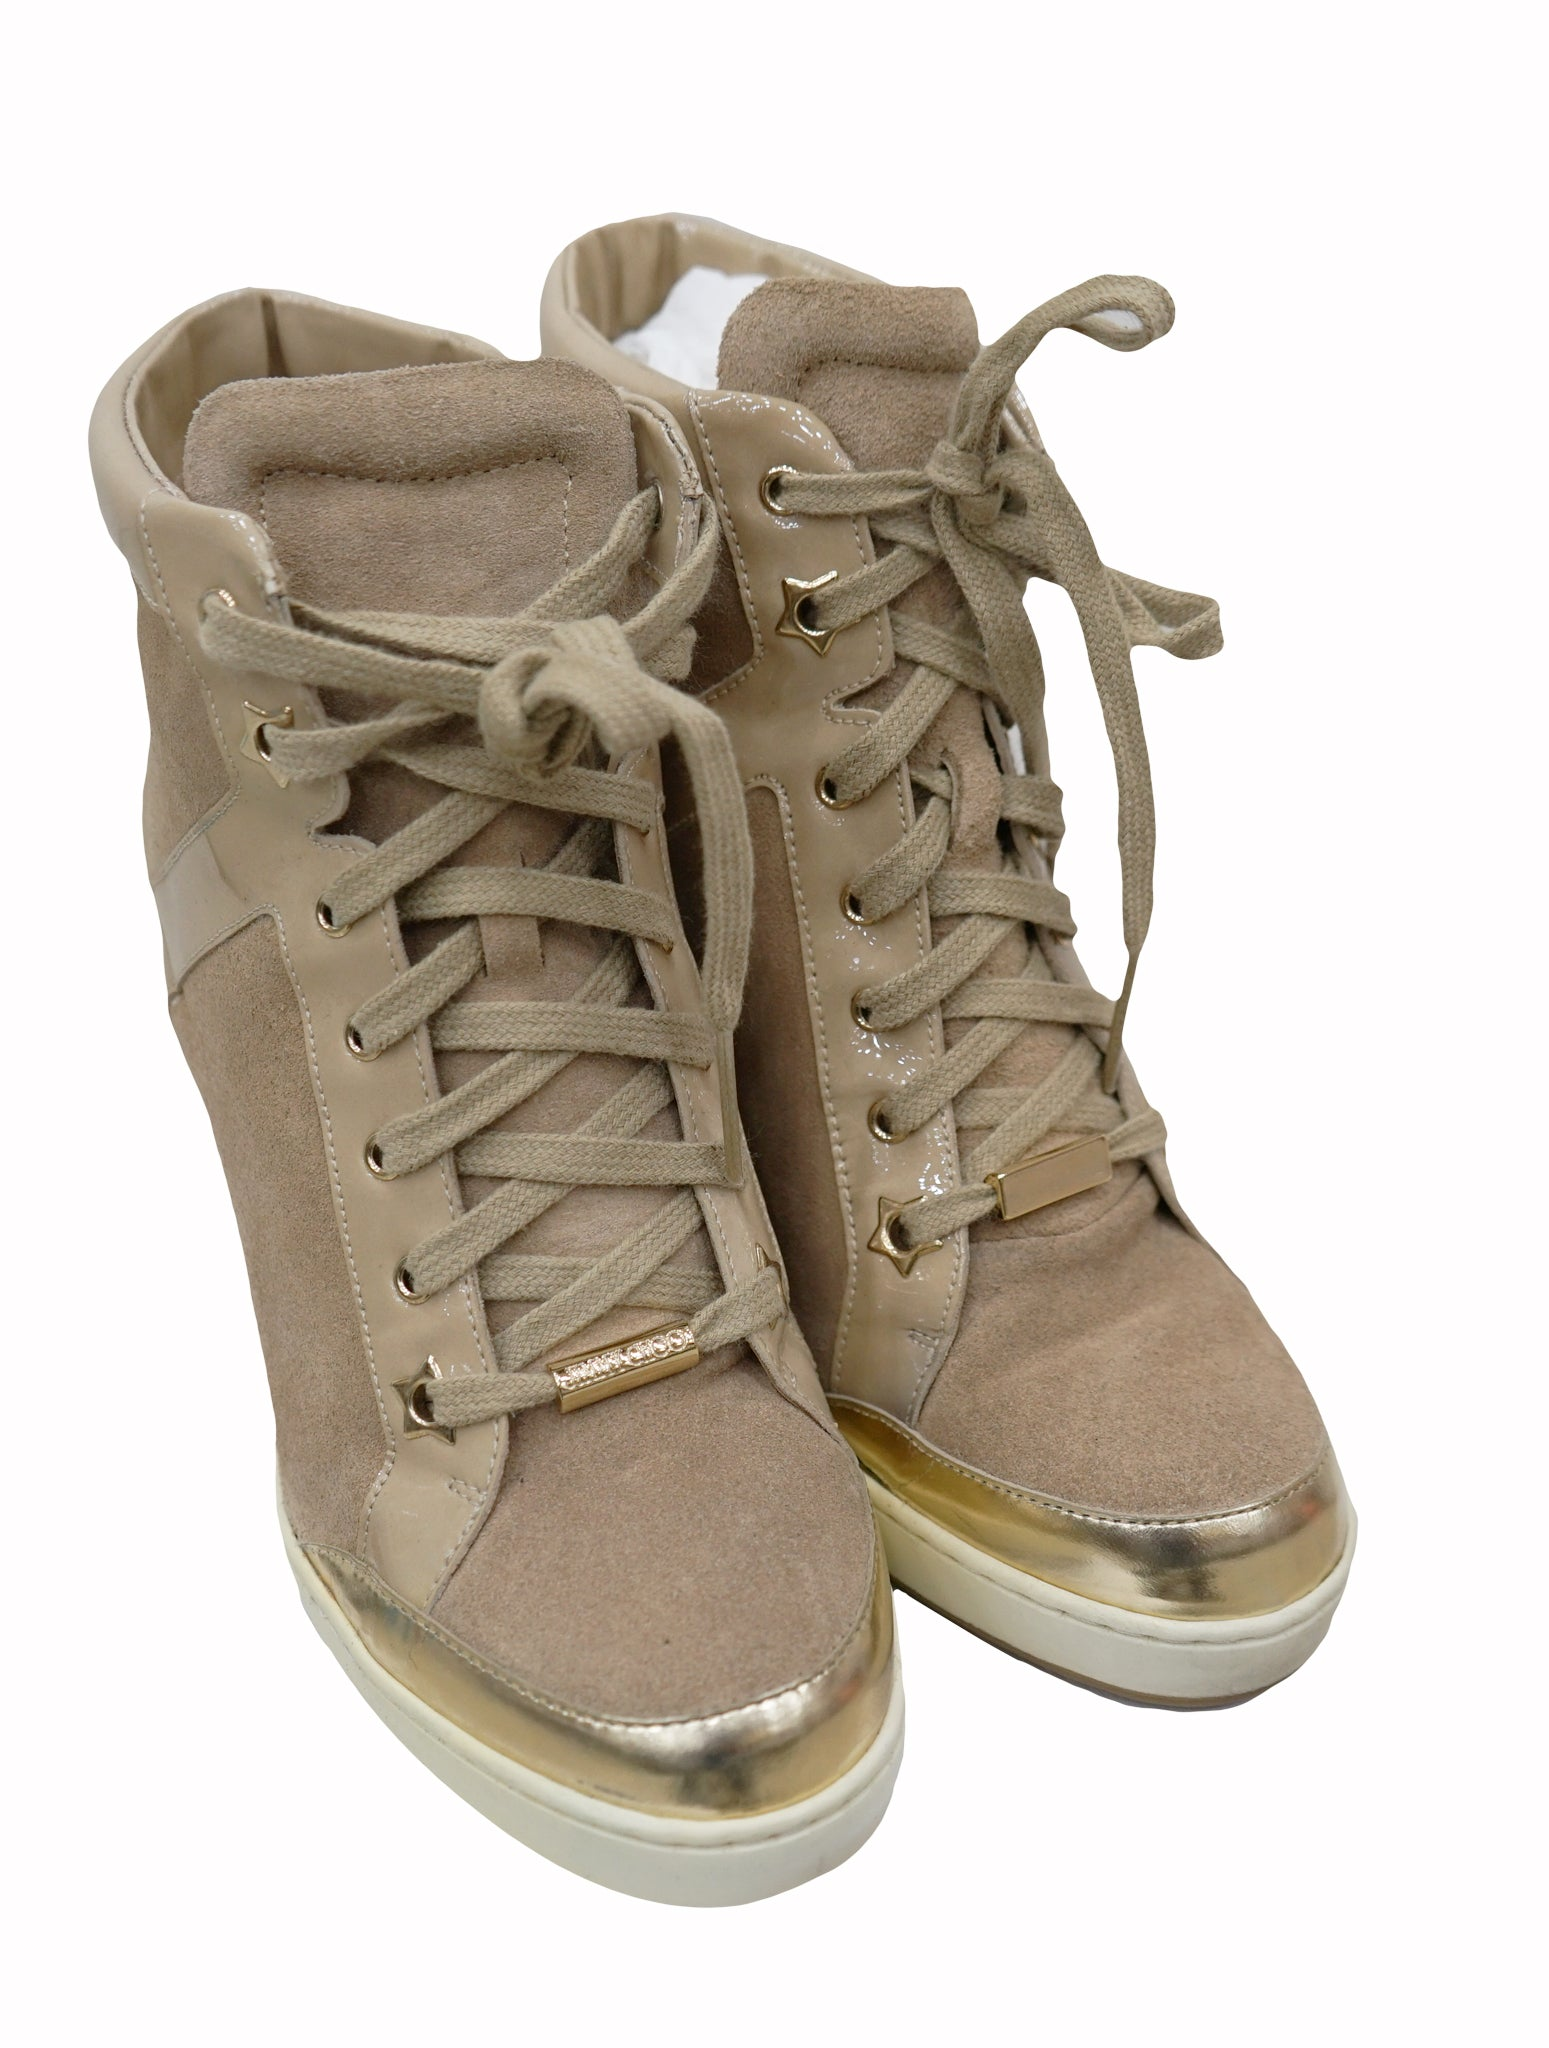 BEIGE PRESTON WEDGE HI-TOP SNEAKERS